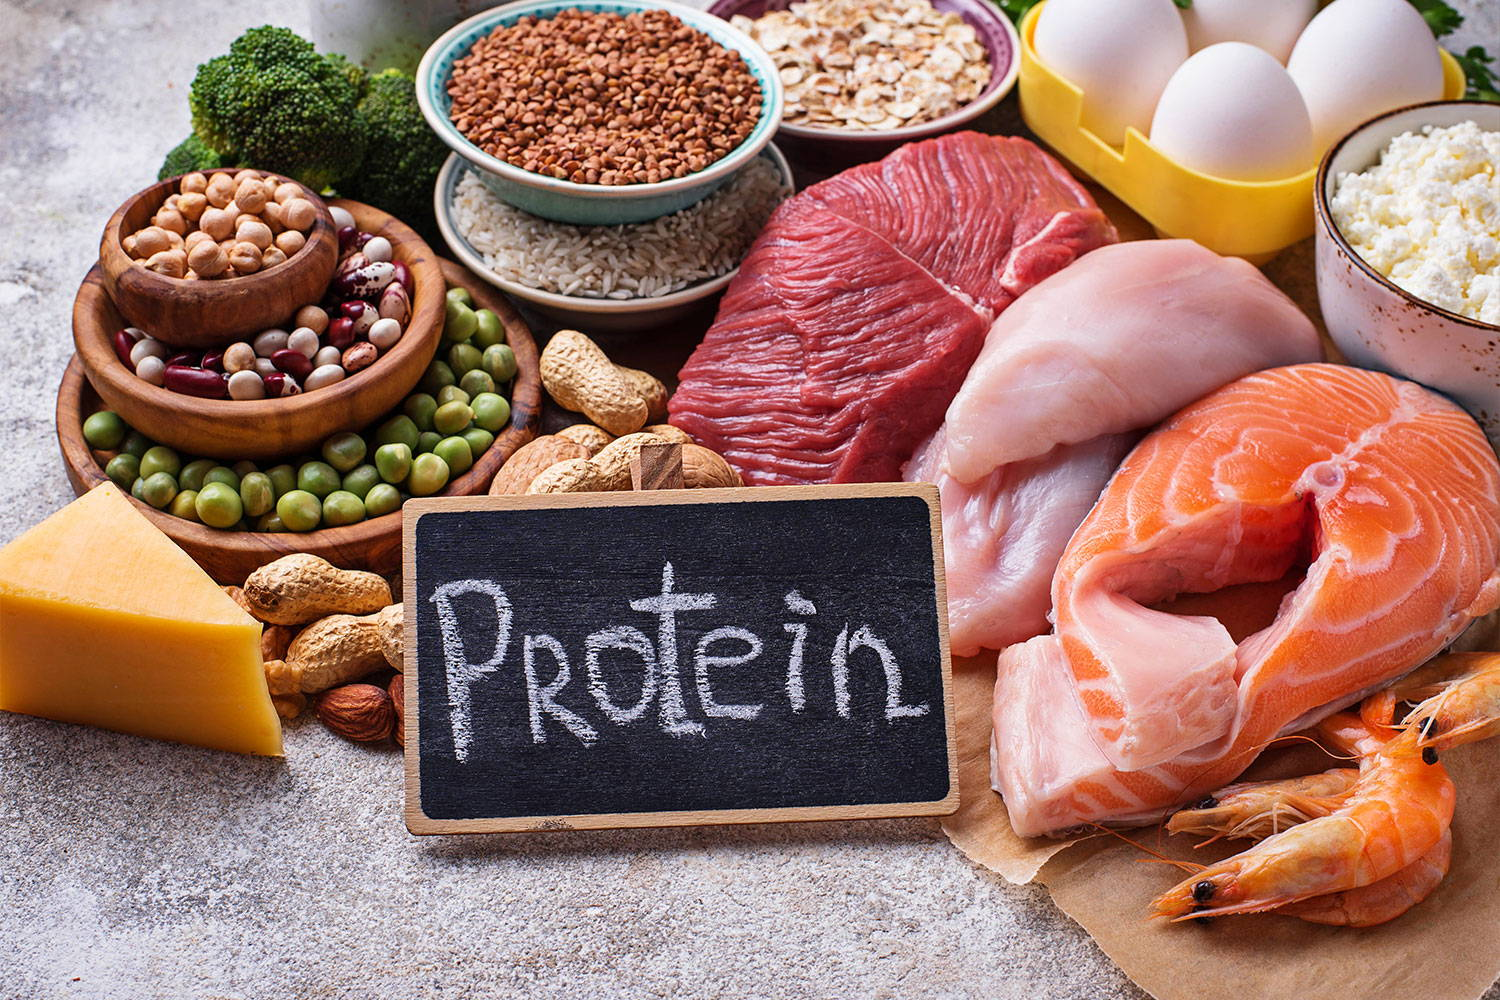 Protein and Weight Loss: More Protein May Be Better